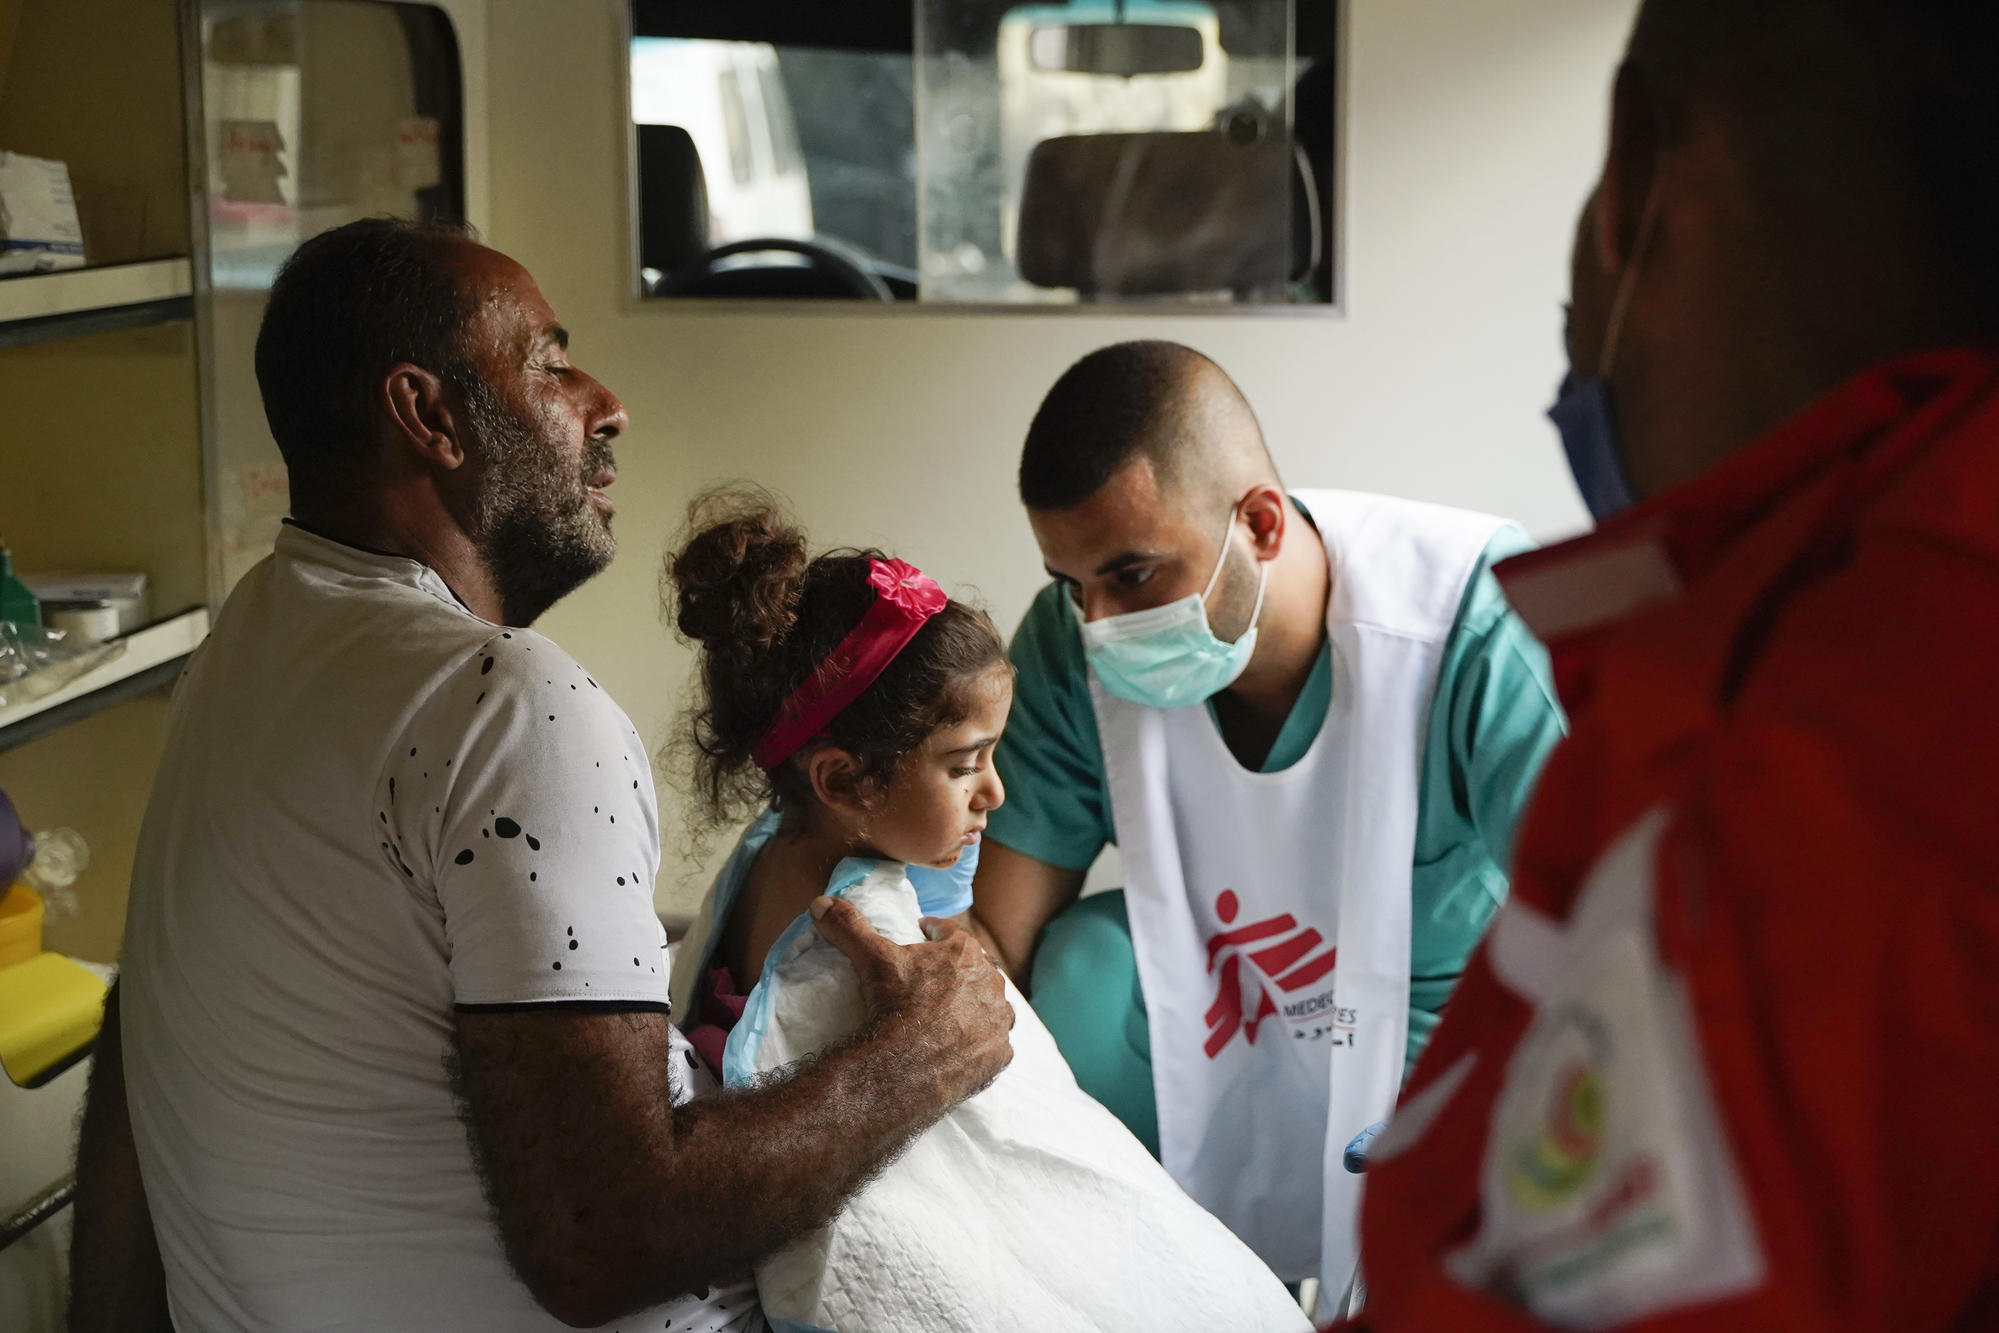 MSF has established emergency medical points in Beirut, treating patients injured in the huge explosion that hit large parts of